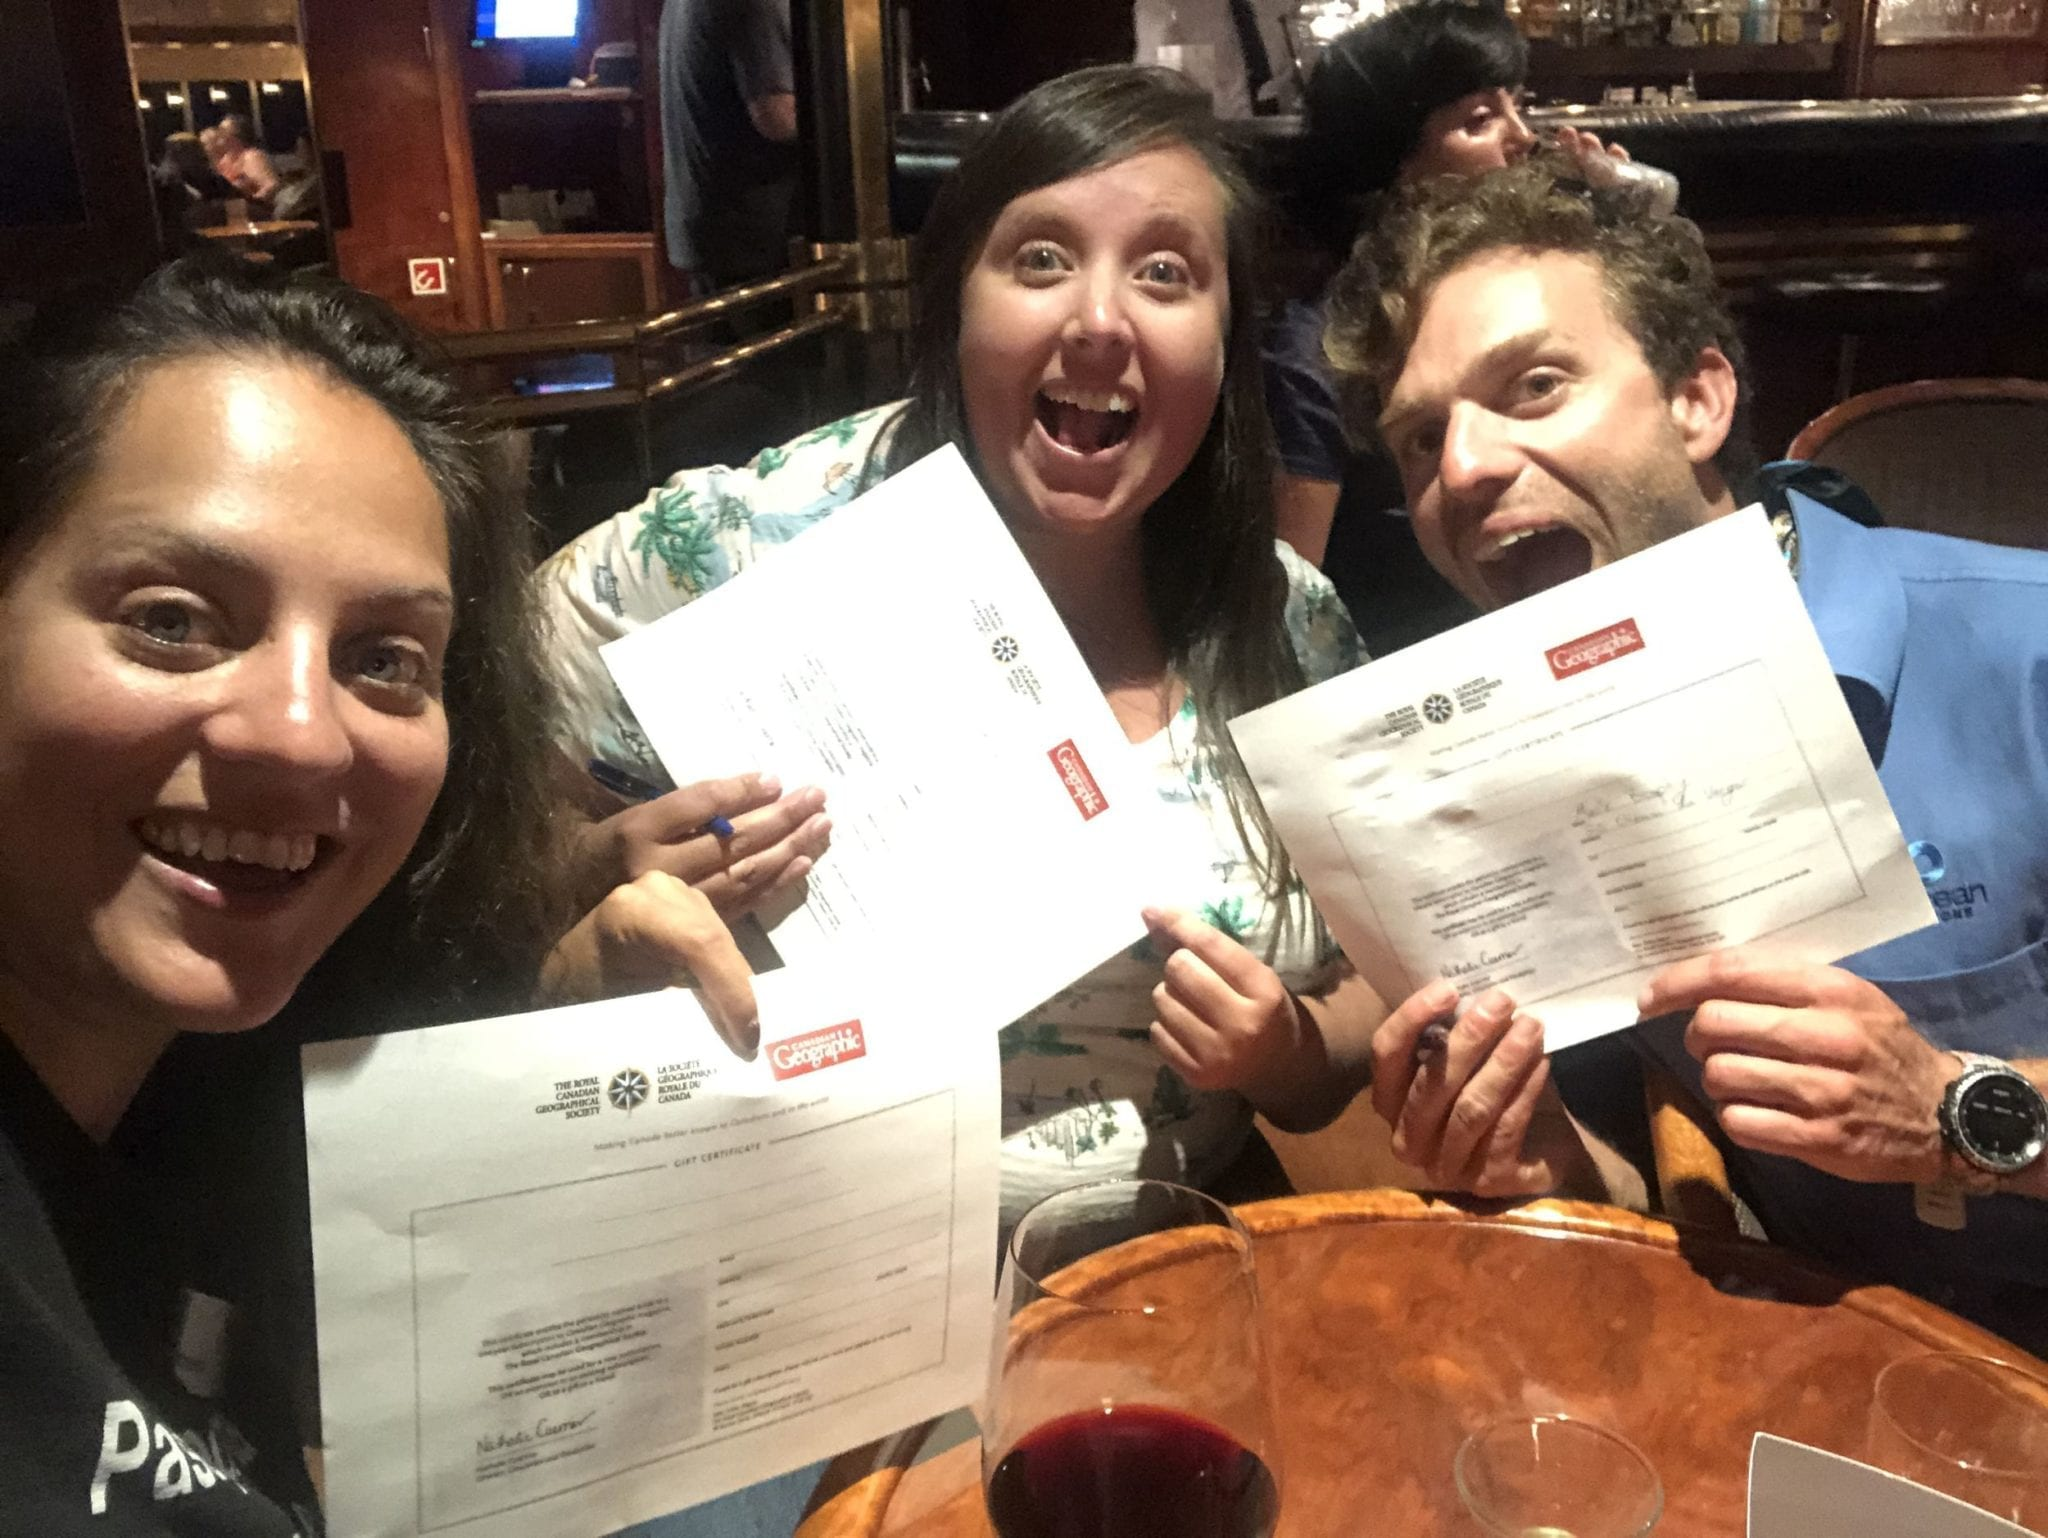 Kate, Brophy, and Cailin hold their certificates for winning the trivia competition, and their free subscriptions to Canadian Geographic magazine.